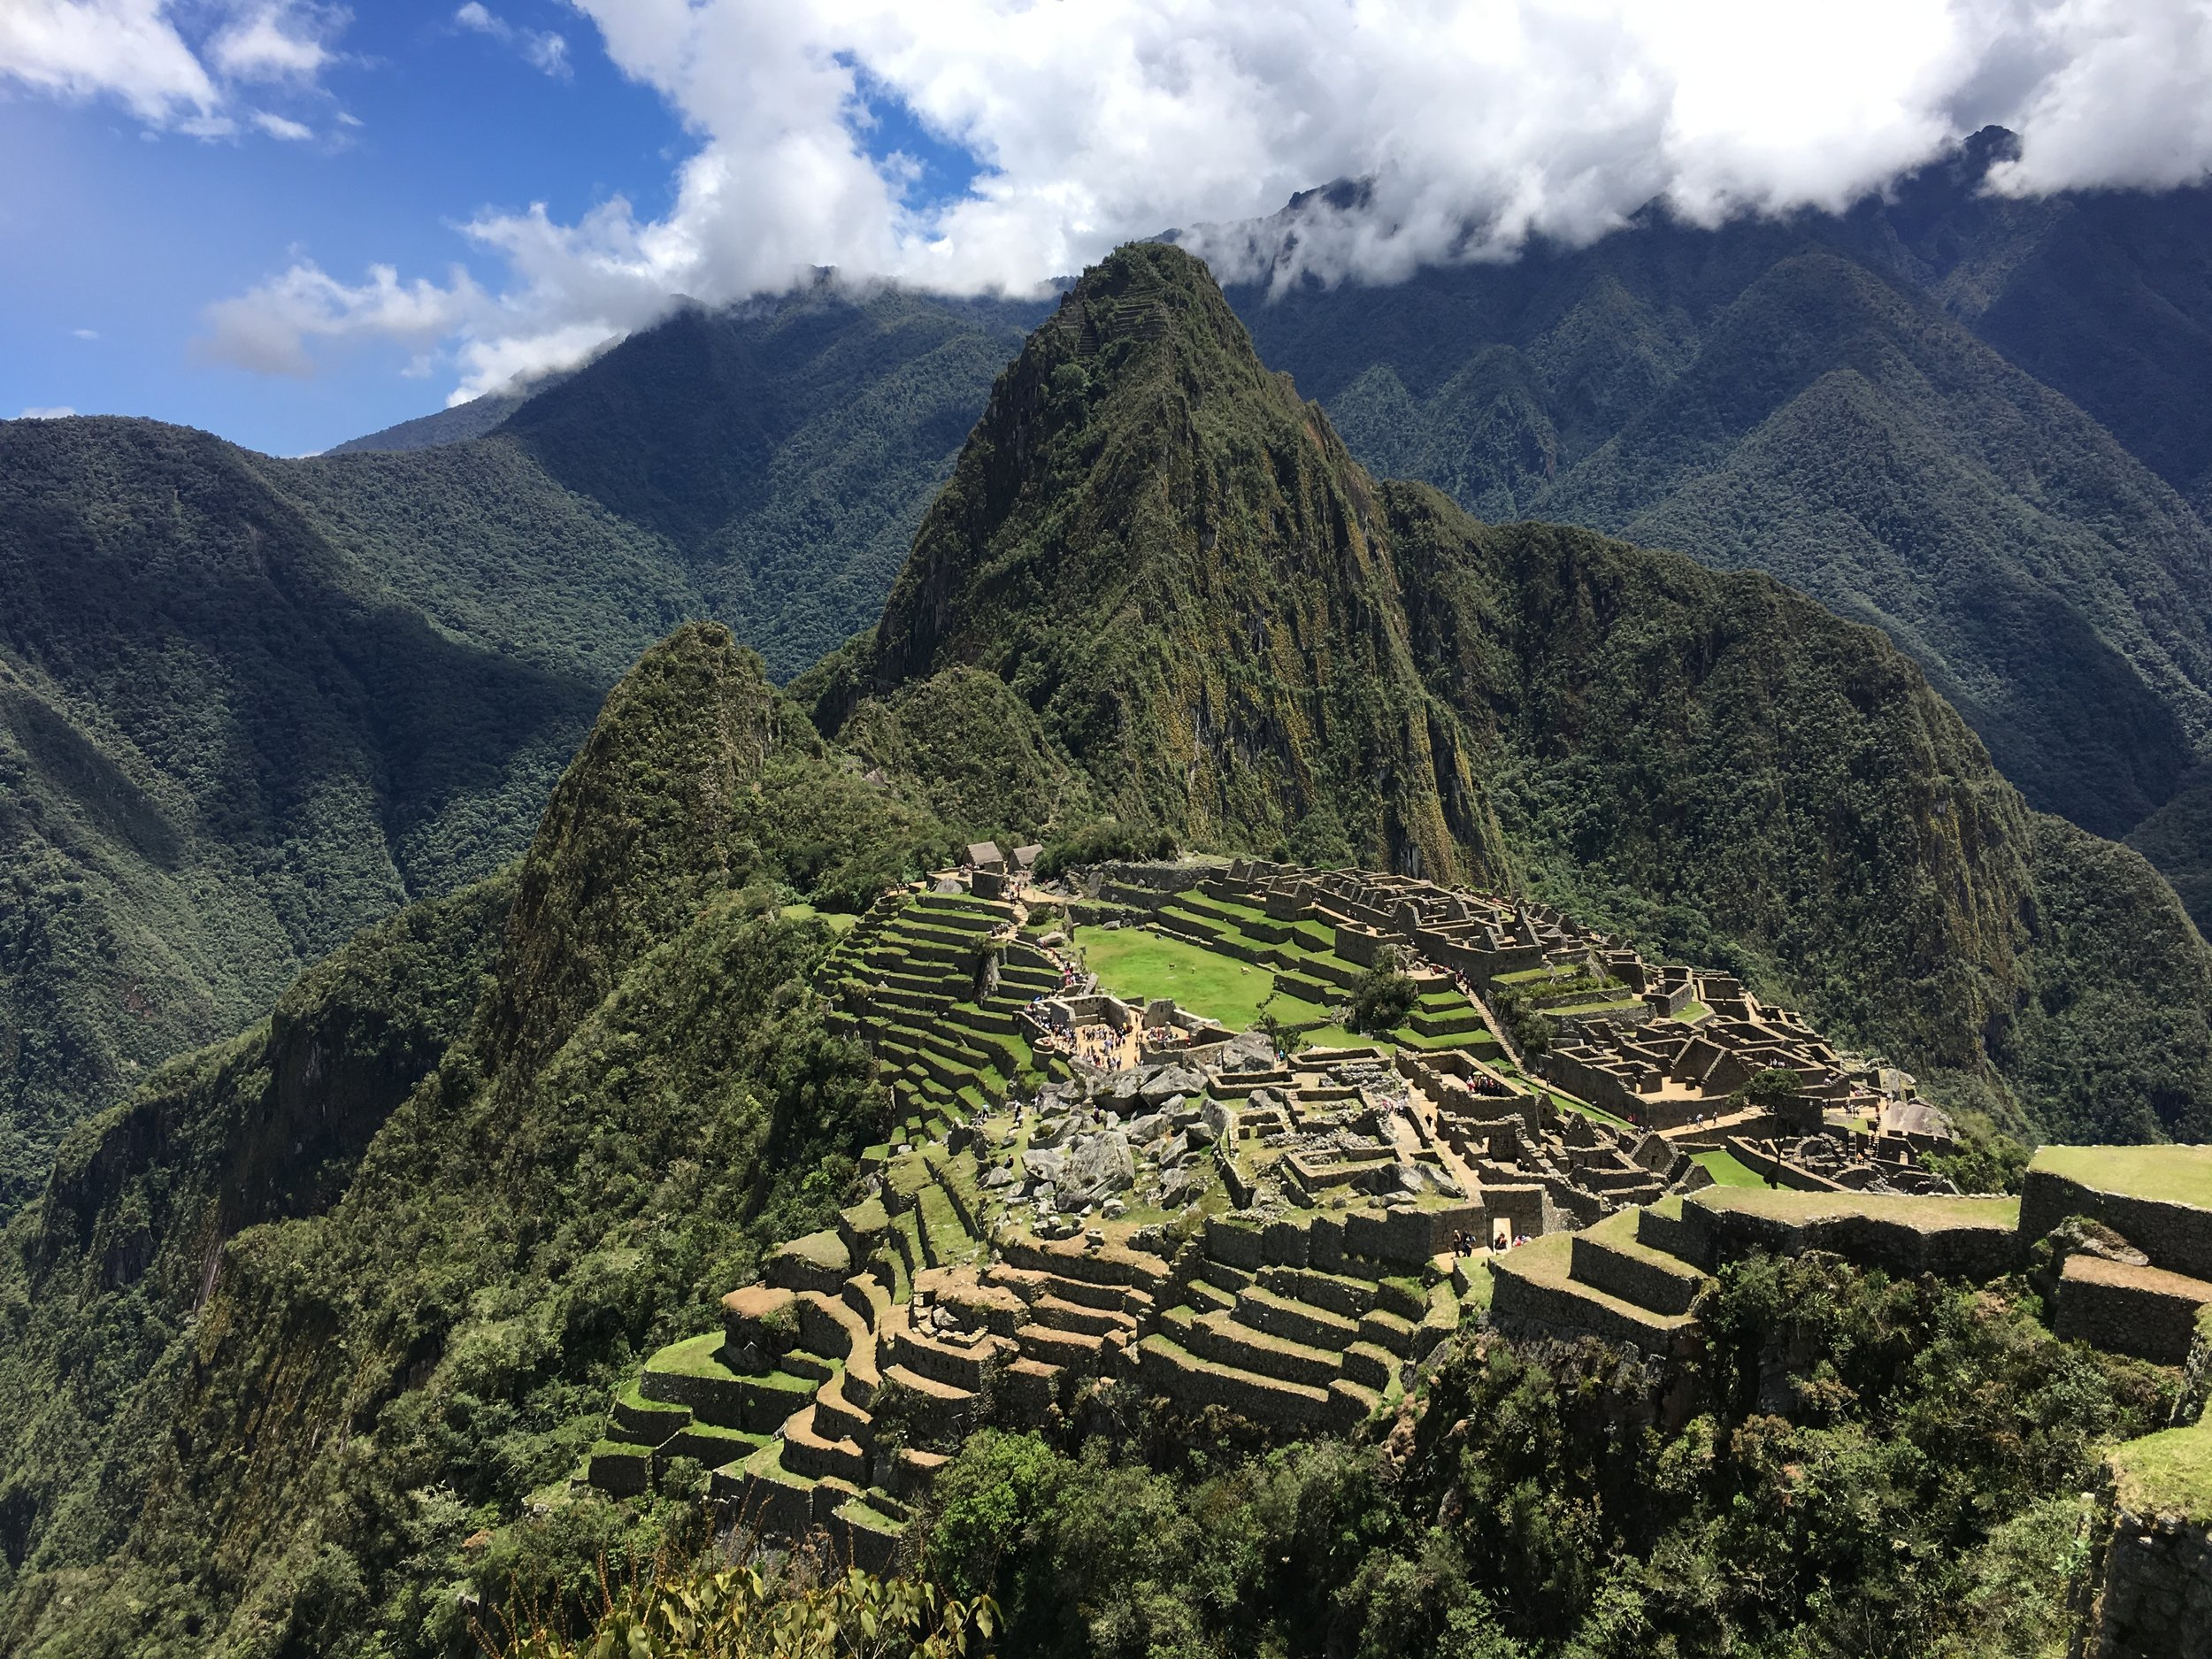 Machu Picchu - The lost city in the mountains.